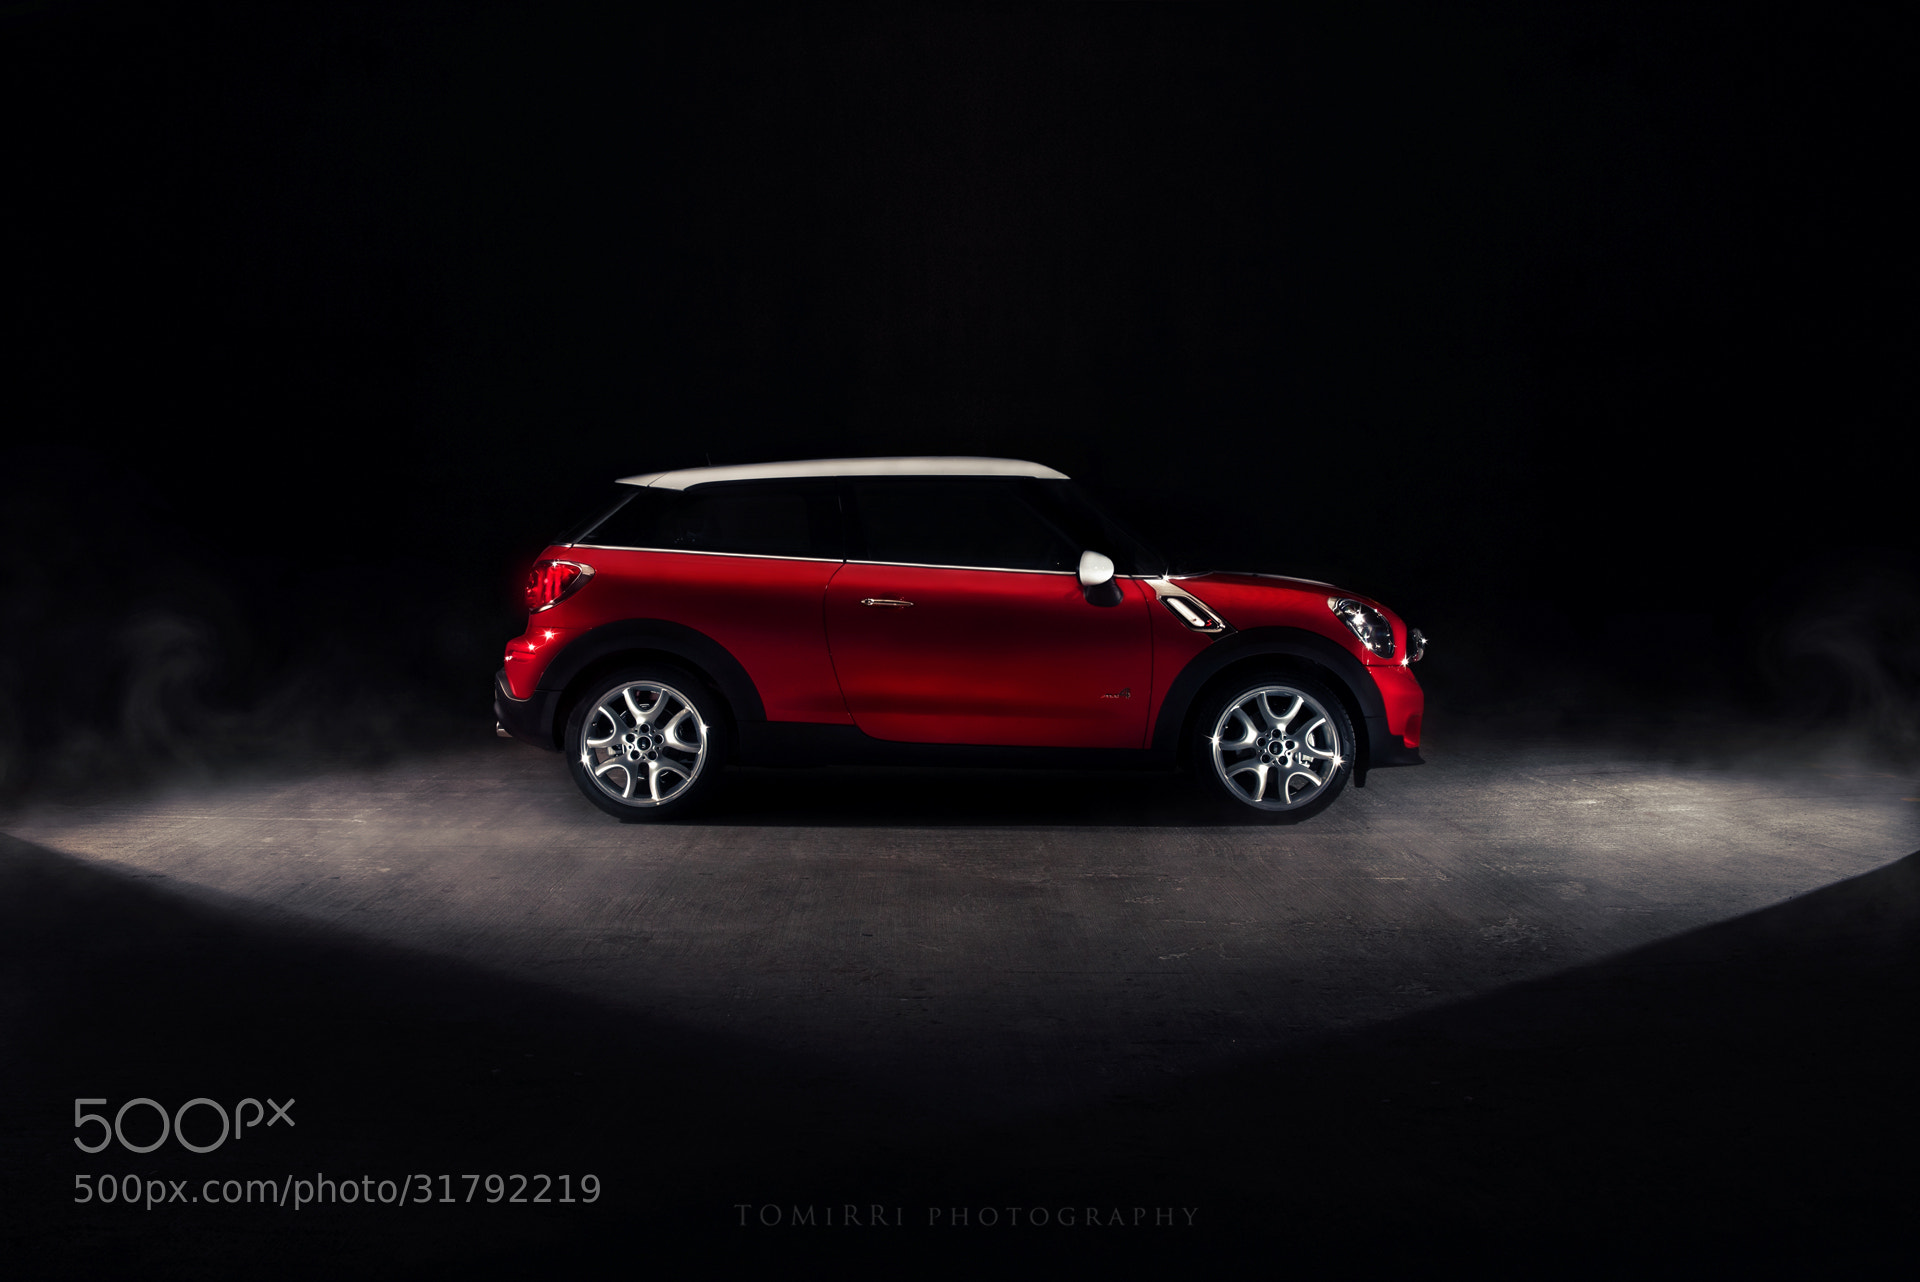 Photograph Mini Paceman by Tomirri photography on 500px